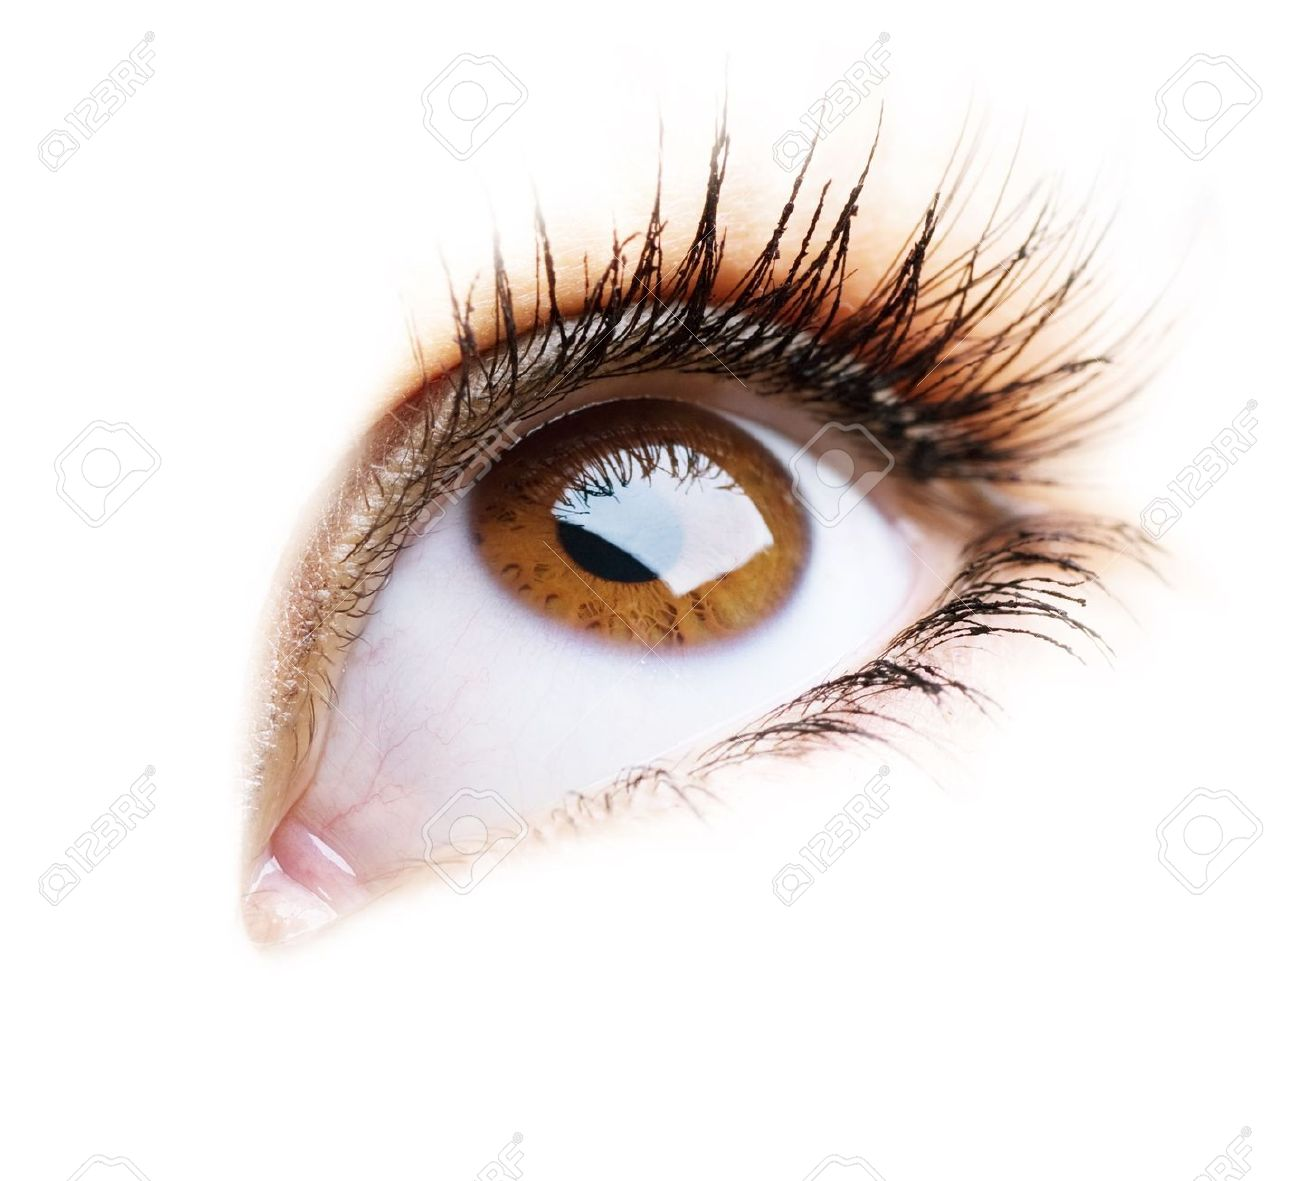 Beautiful Eye of Woman over white background - 7815165